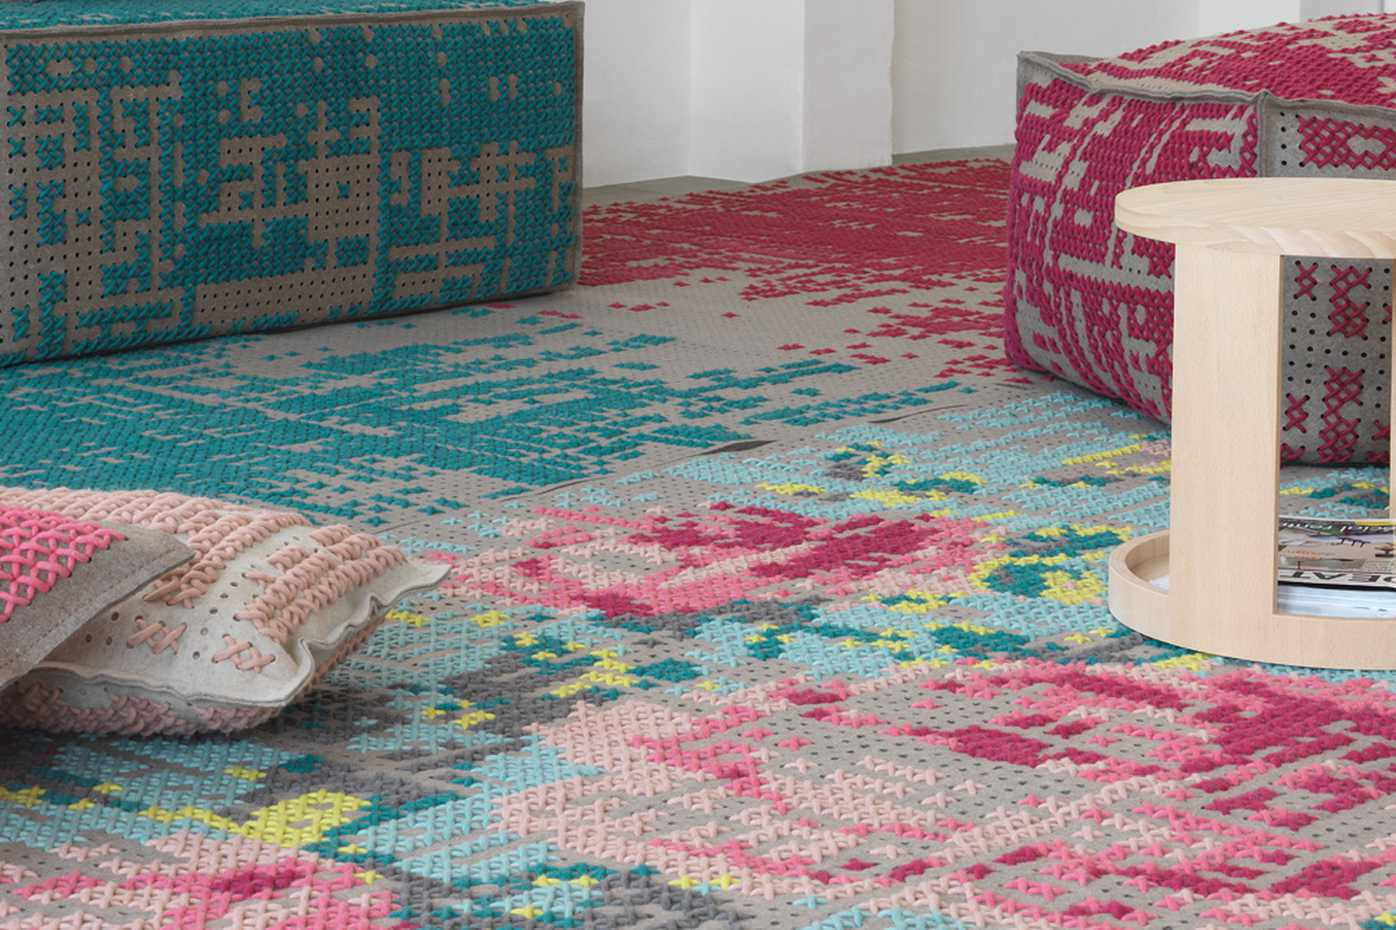 Canevas Rugs by Gan Rugs product image 5